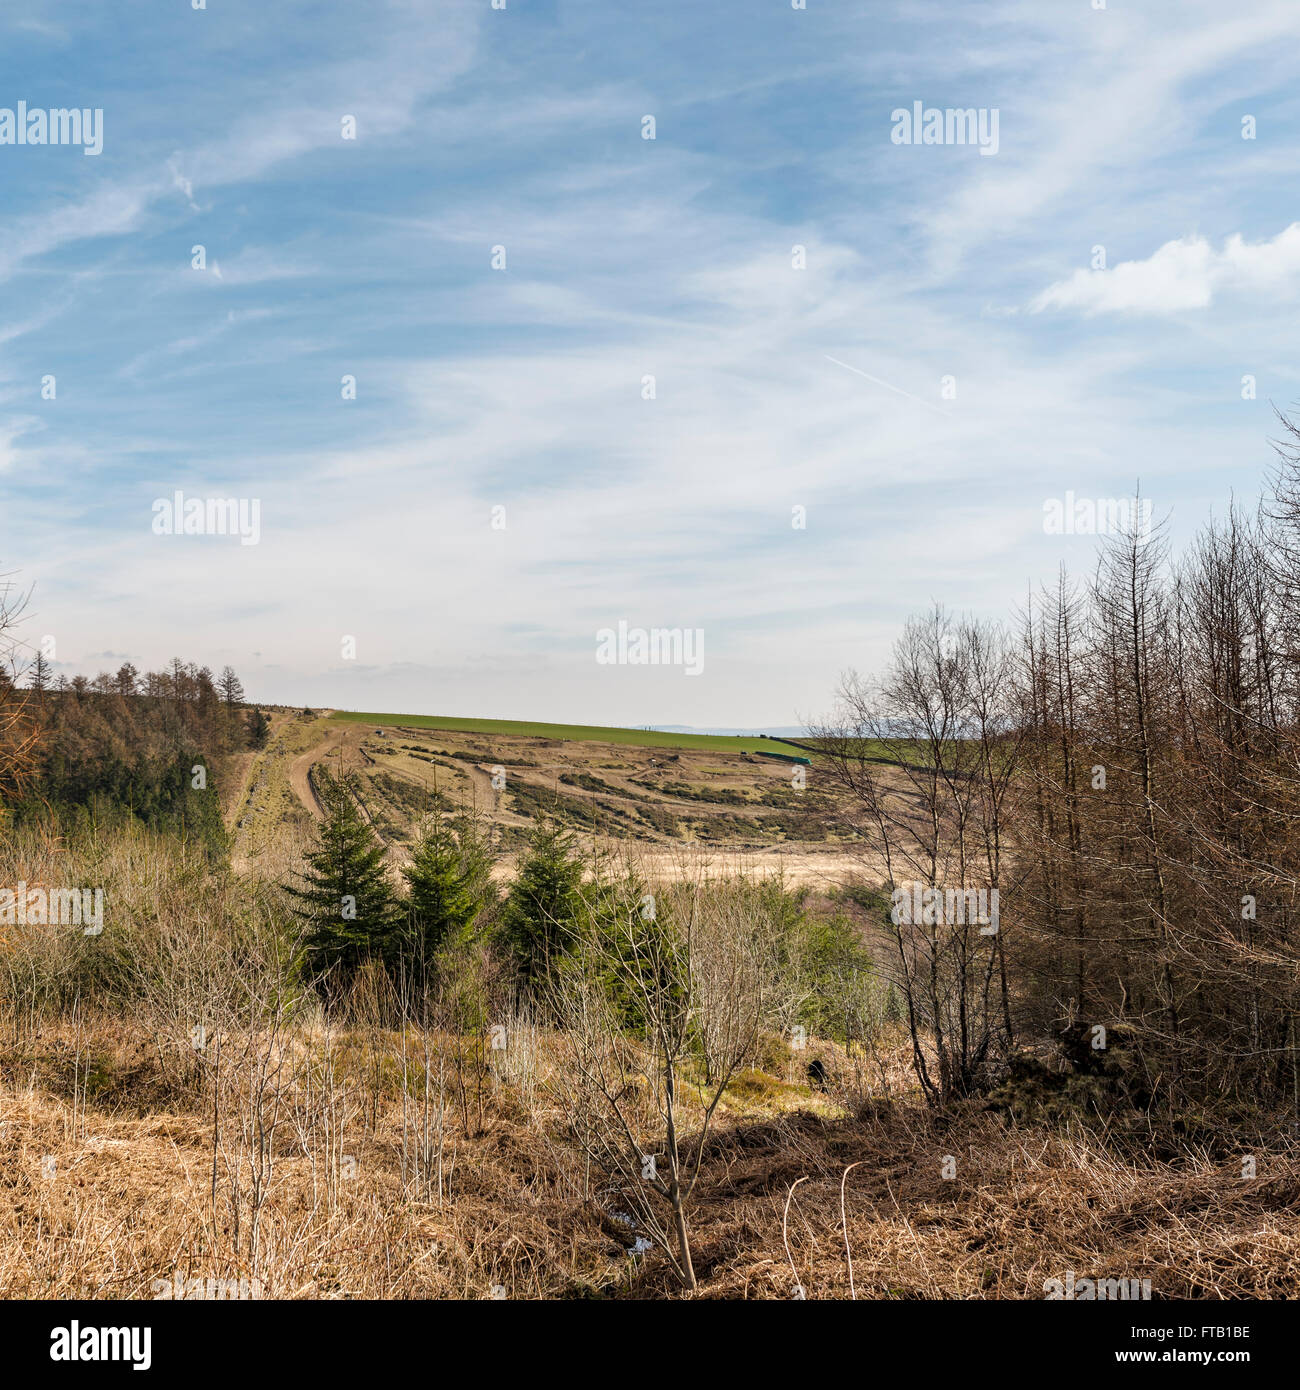 Looking across the valley towards the motor cycle scramble track on the opposite hill. - Stock Image